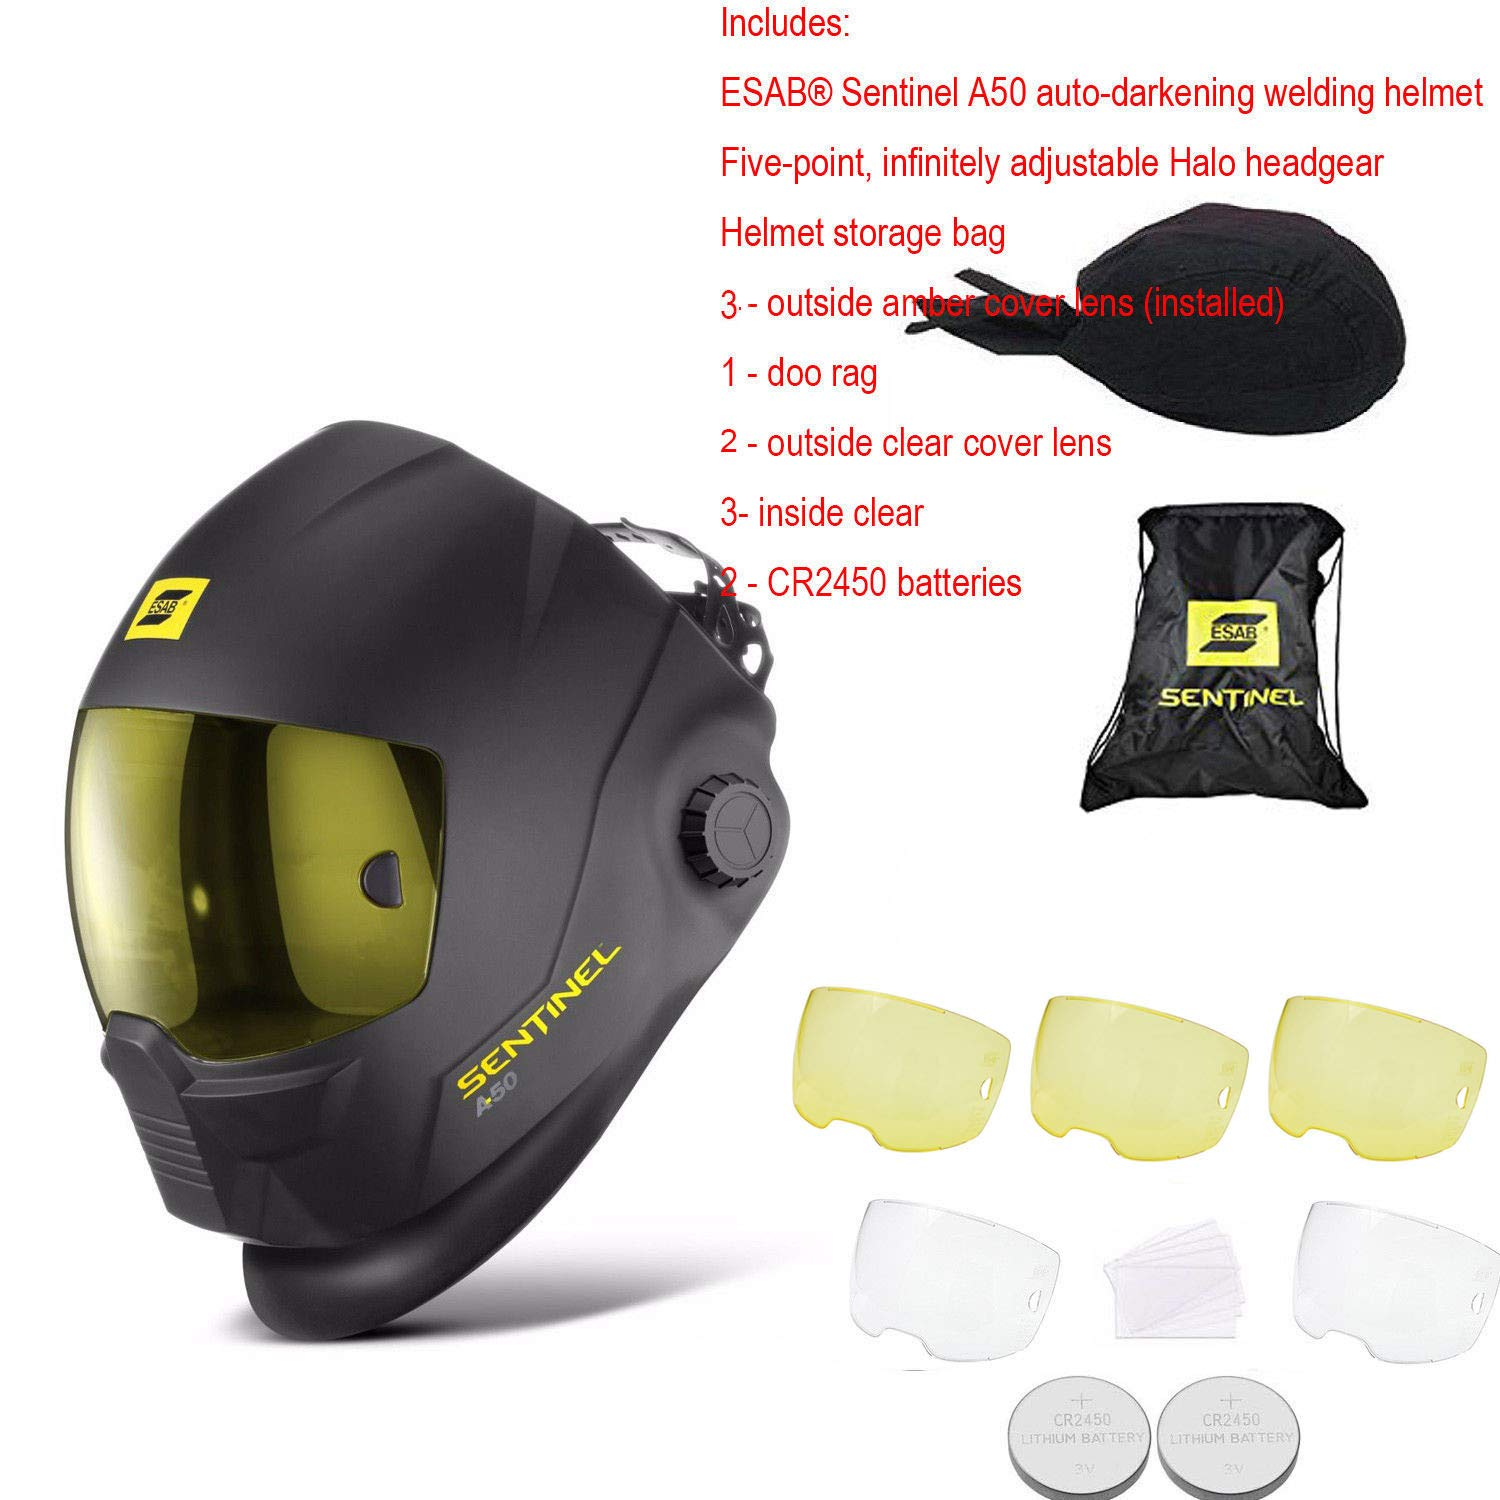 ESAB Sentinel A50 Welding Helmet -0700000800 - Buy one get one SPARCWELD GLOVES!!! by E S A B